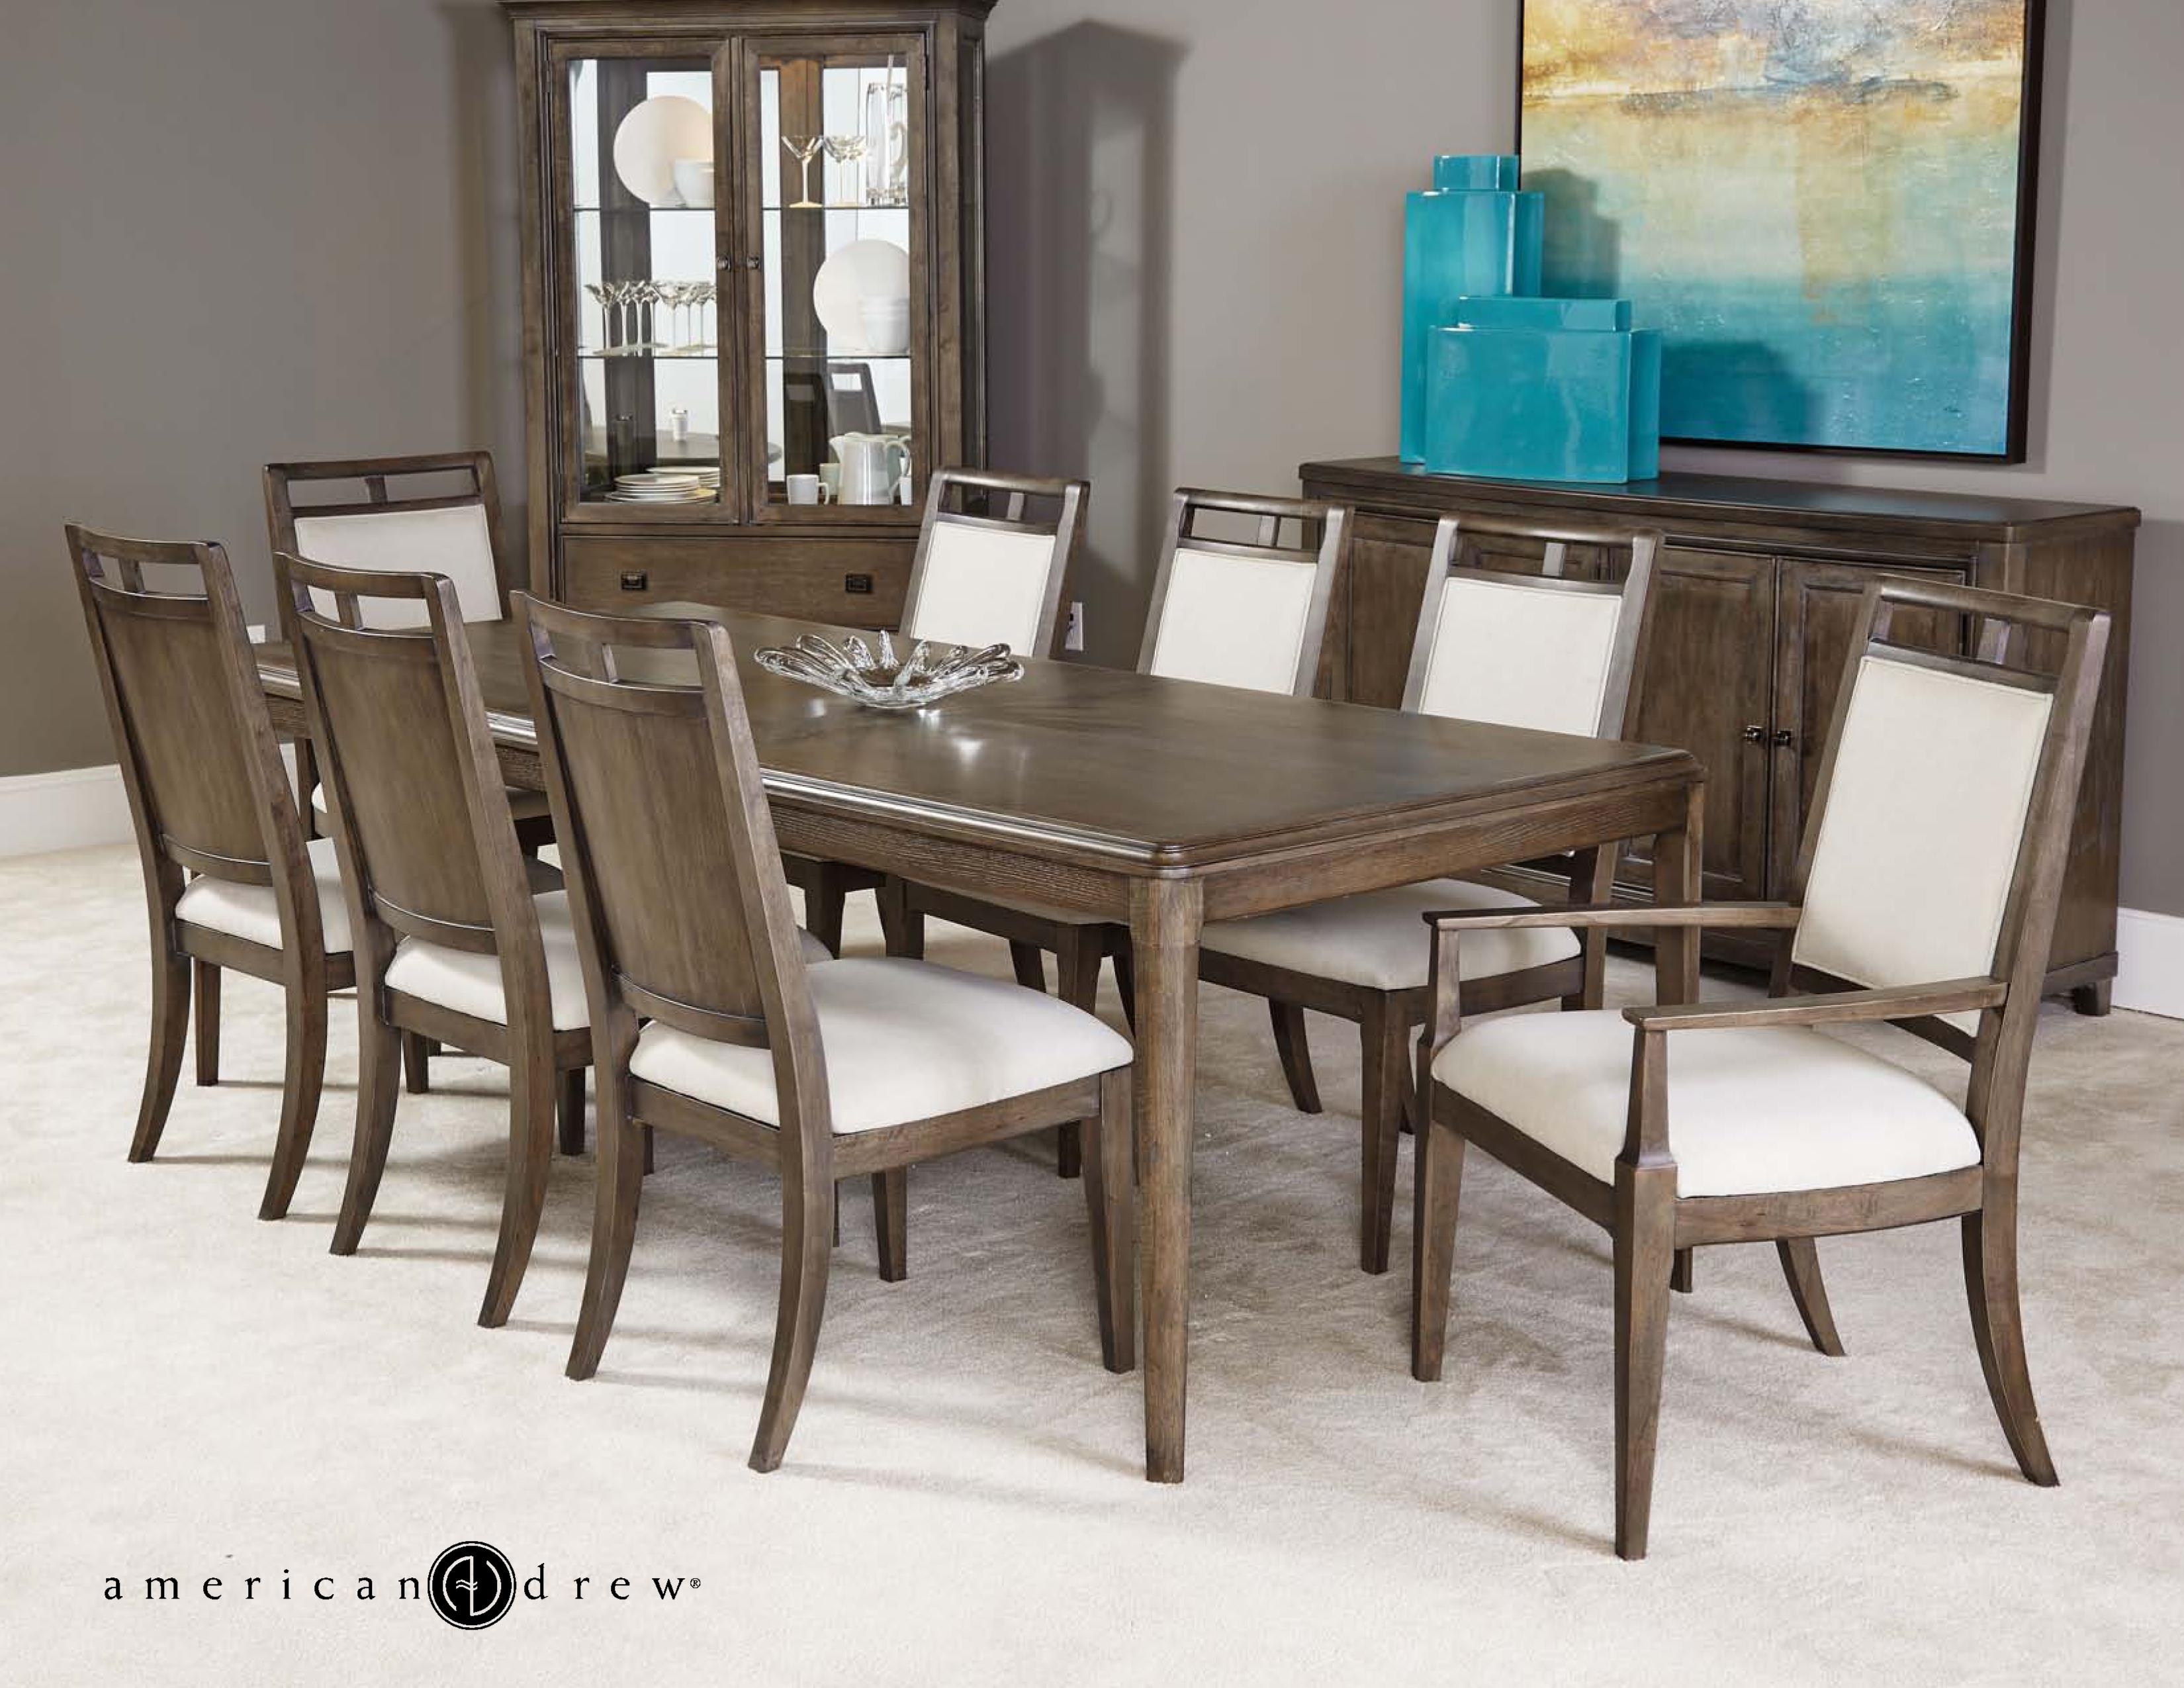 Fabulous Park Studio Contemporary 9 Piece Dining Room Table Set With Upholstered Chairs By American Drew At Stoney Creek Furniture Home Interior And Landscaping Mentranervesignezvosmurscom